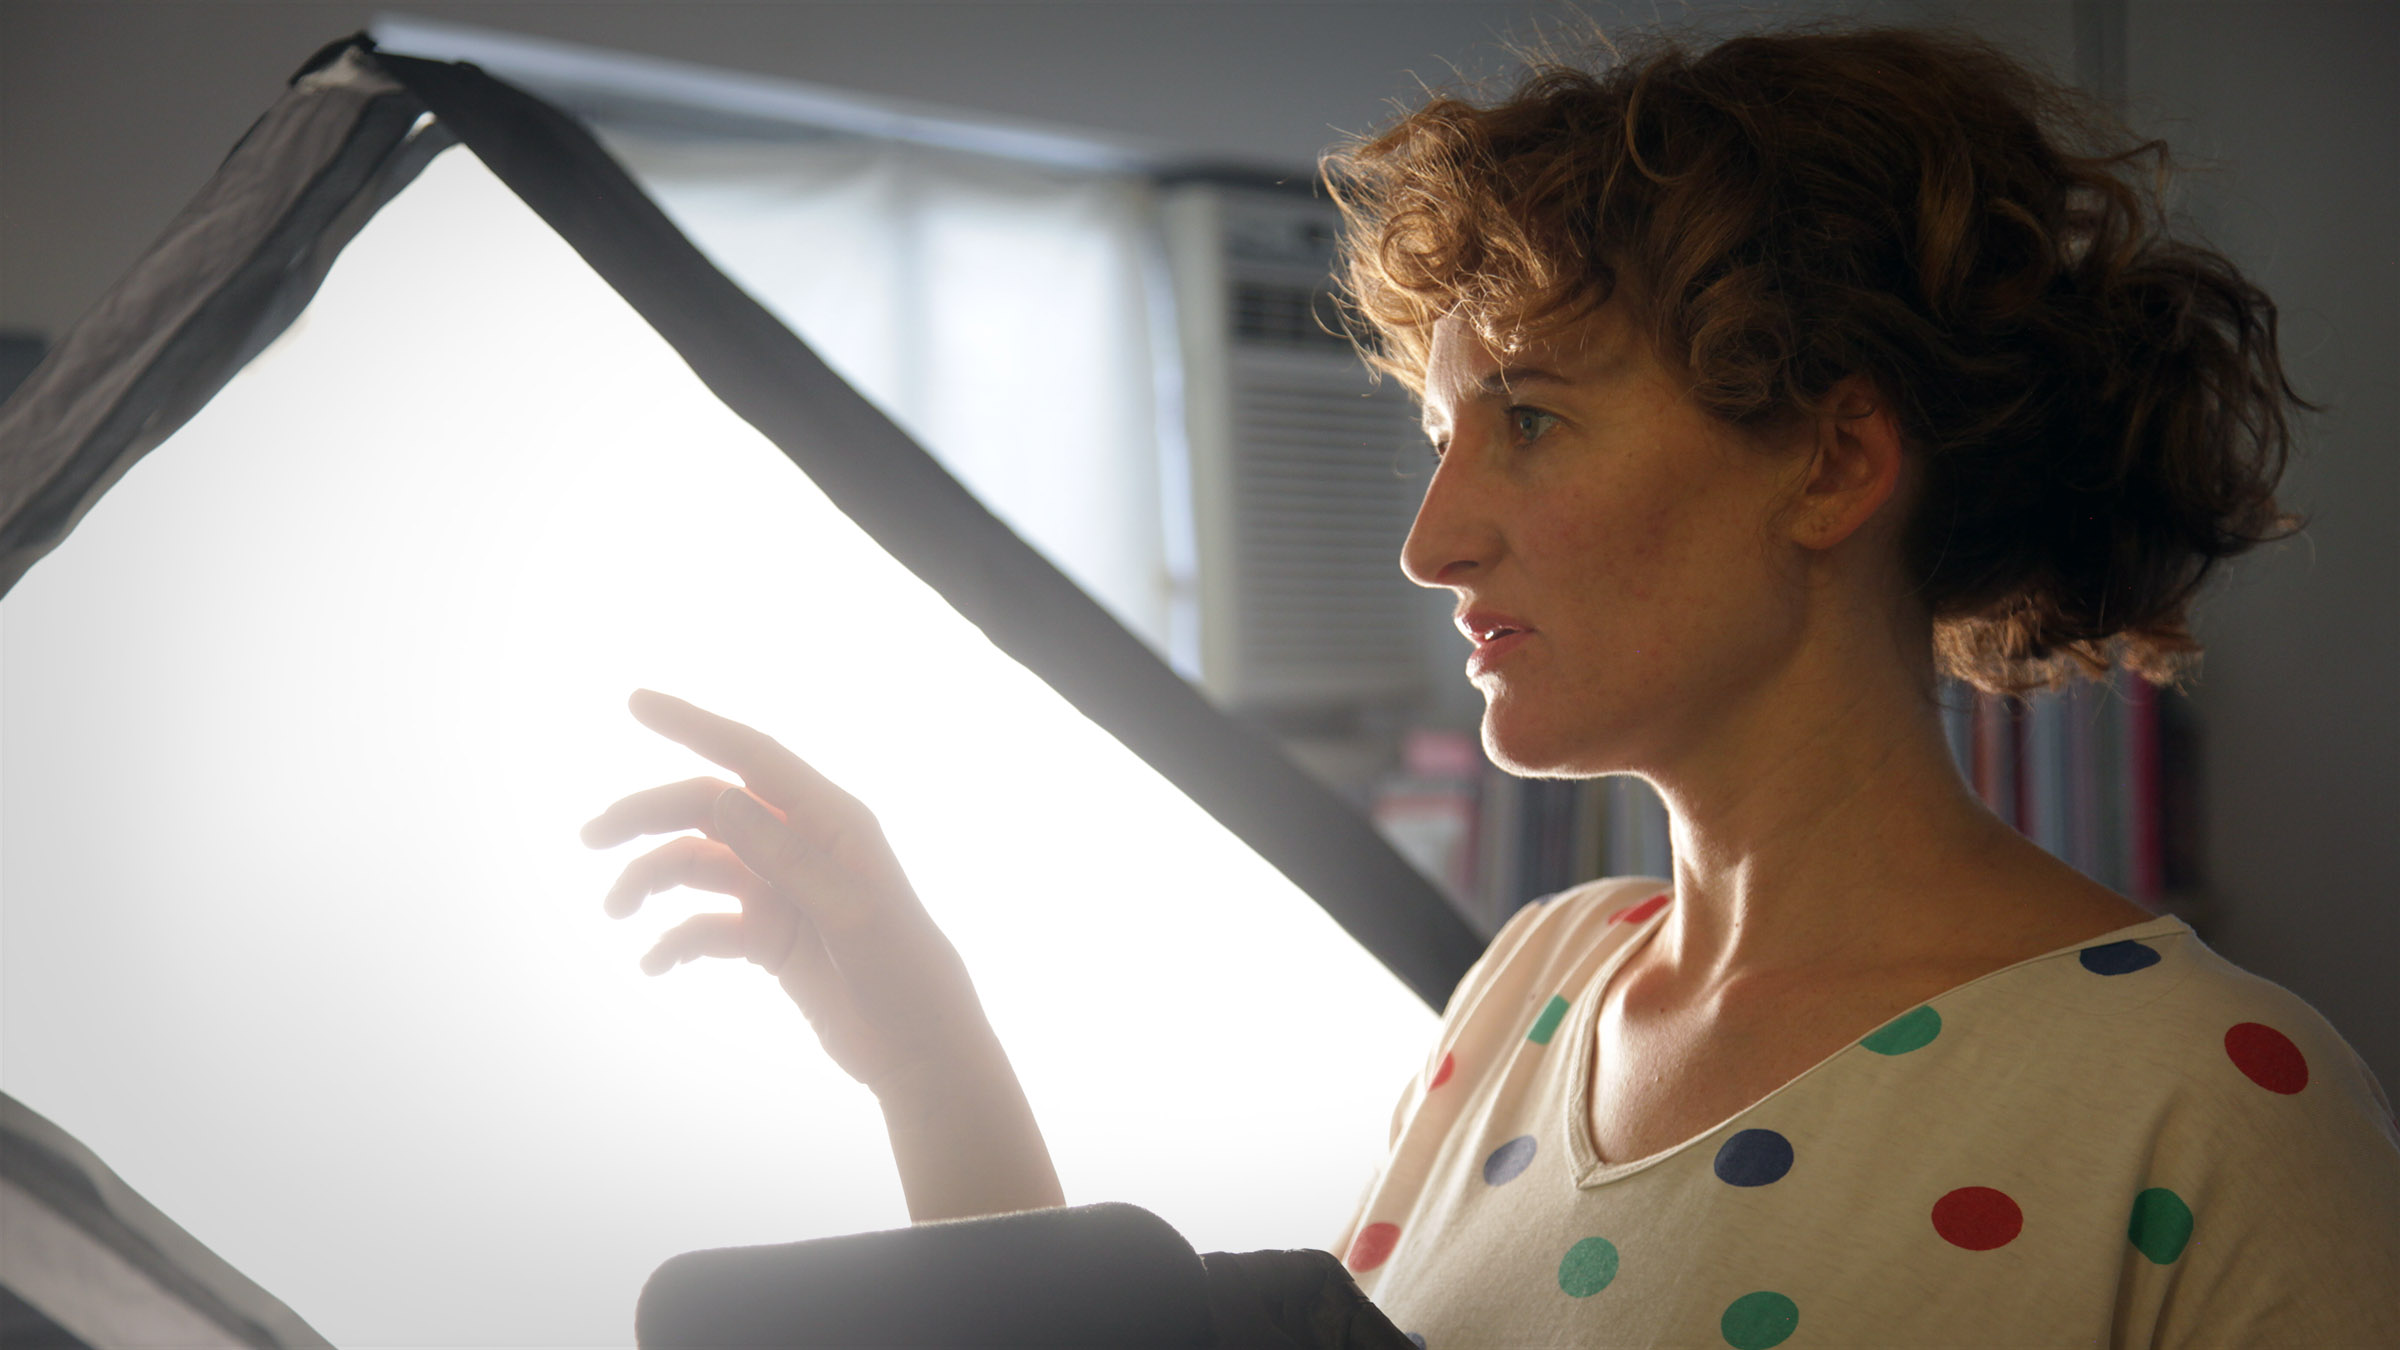 Guest Post: Director Amber Sealey On Shadowing For Netflix, Gender And Tv -  Film Independent